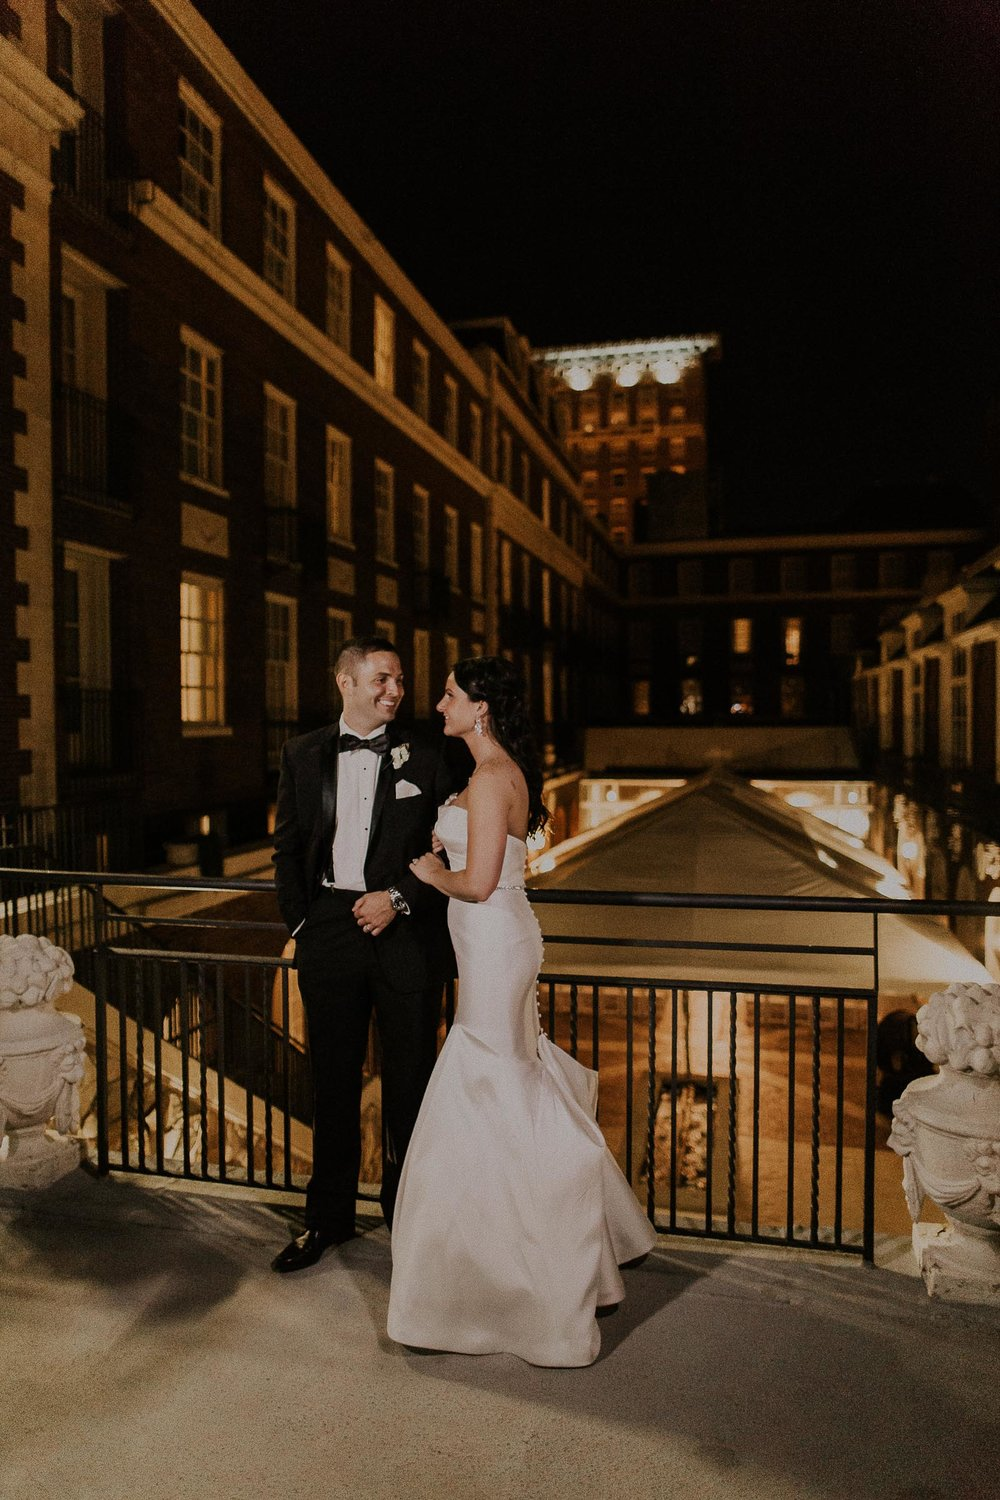 Tom + Robin Art Deco Inspired Wedding at Magnolia Hotel in Omaha, Nebraska view